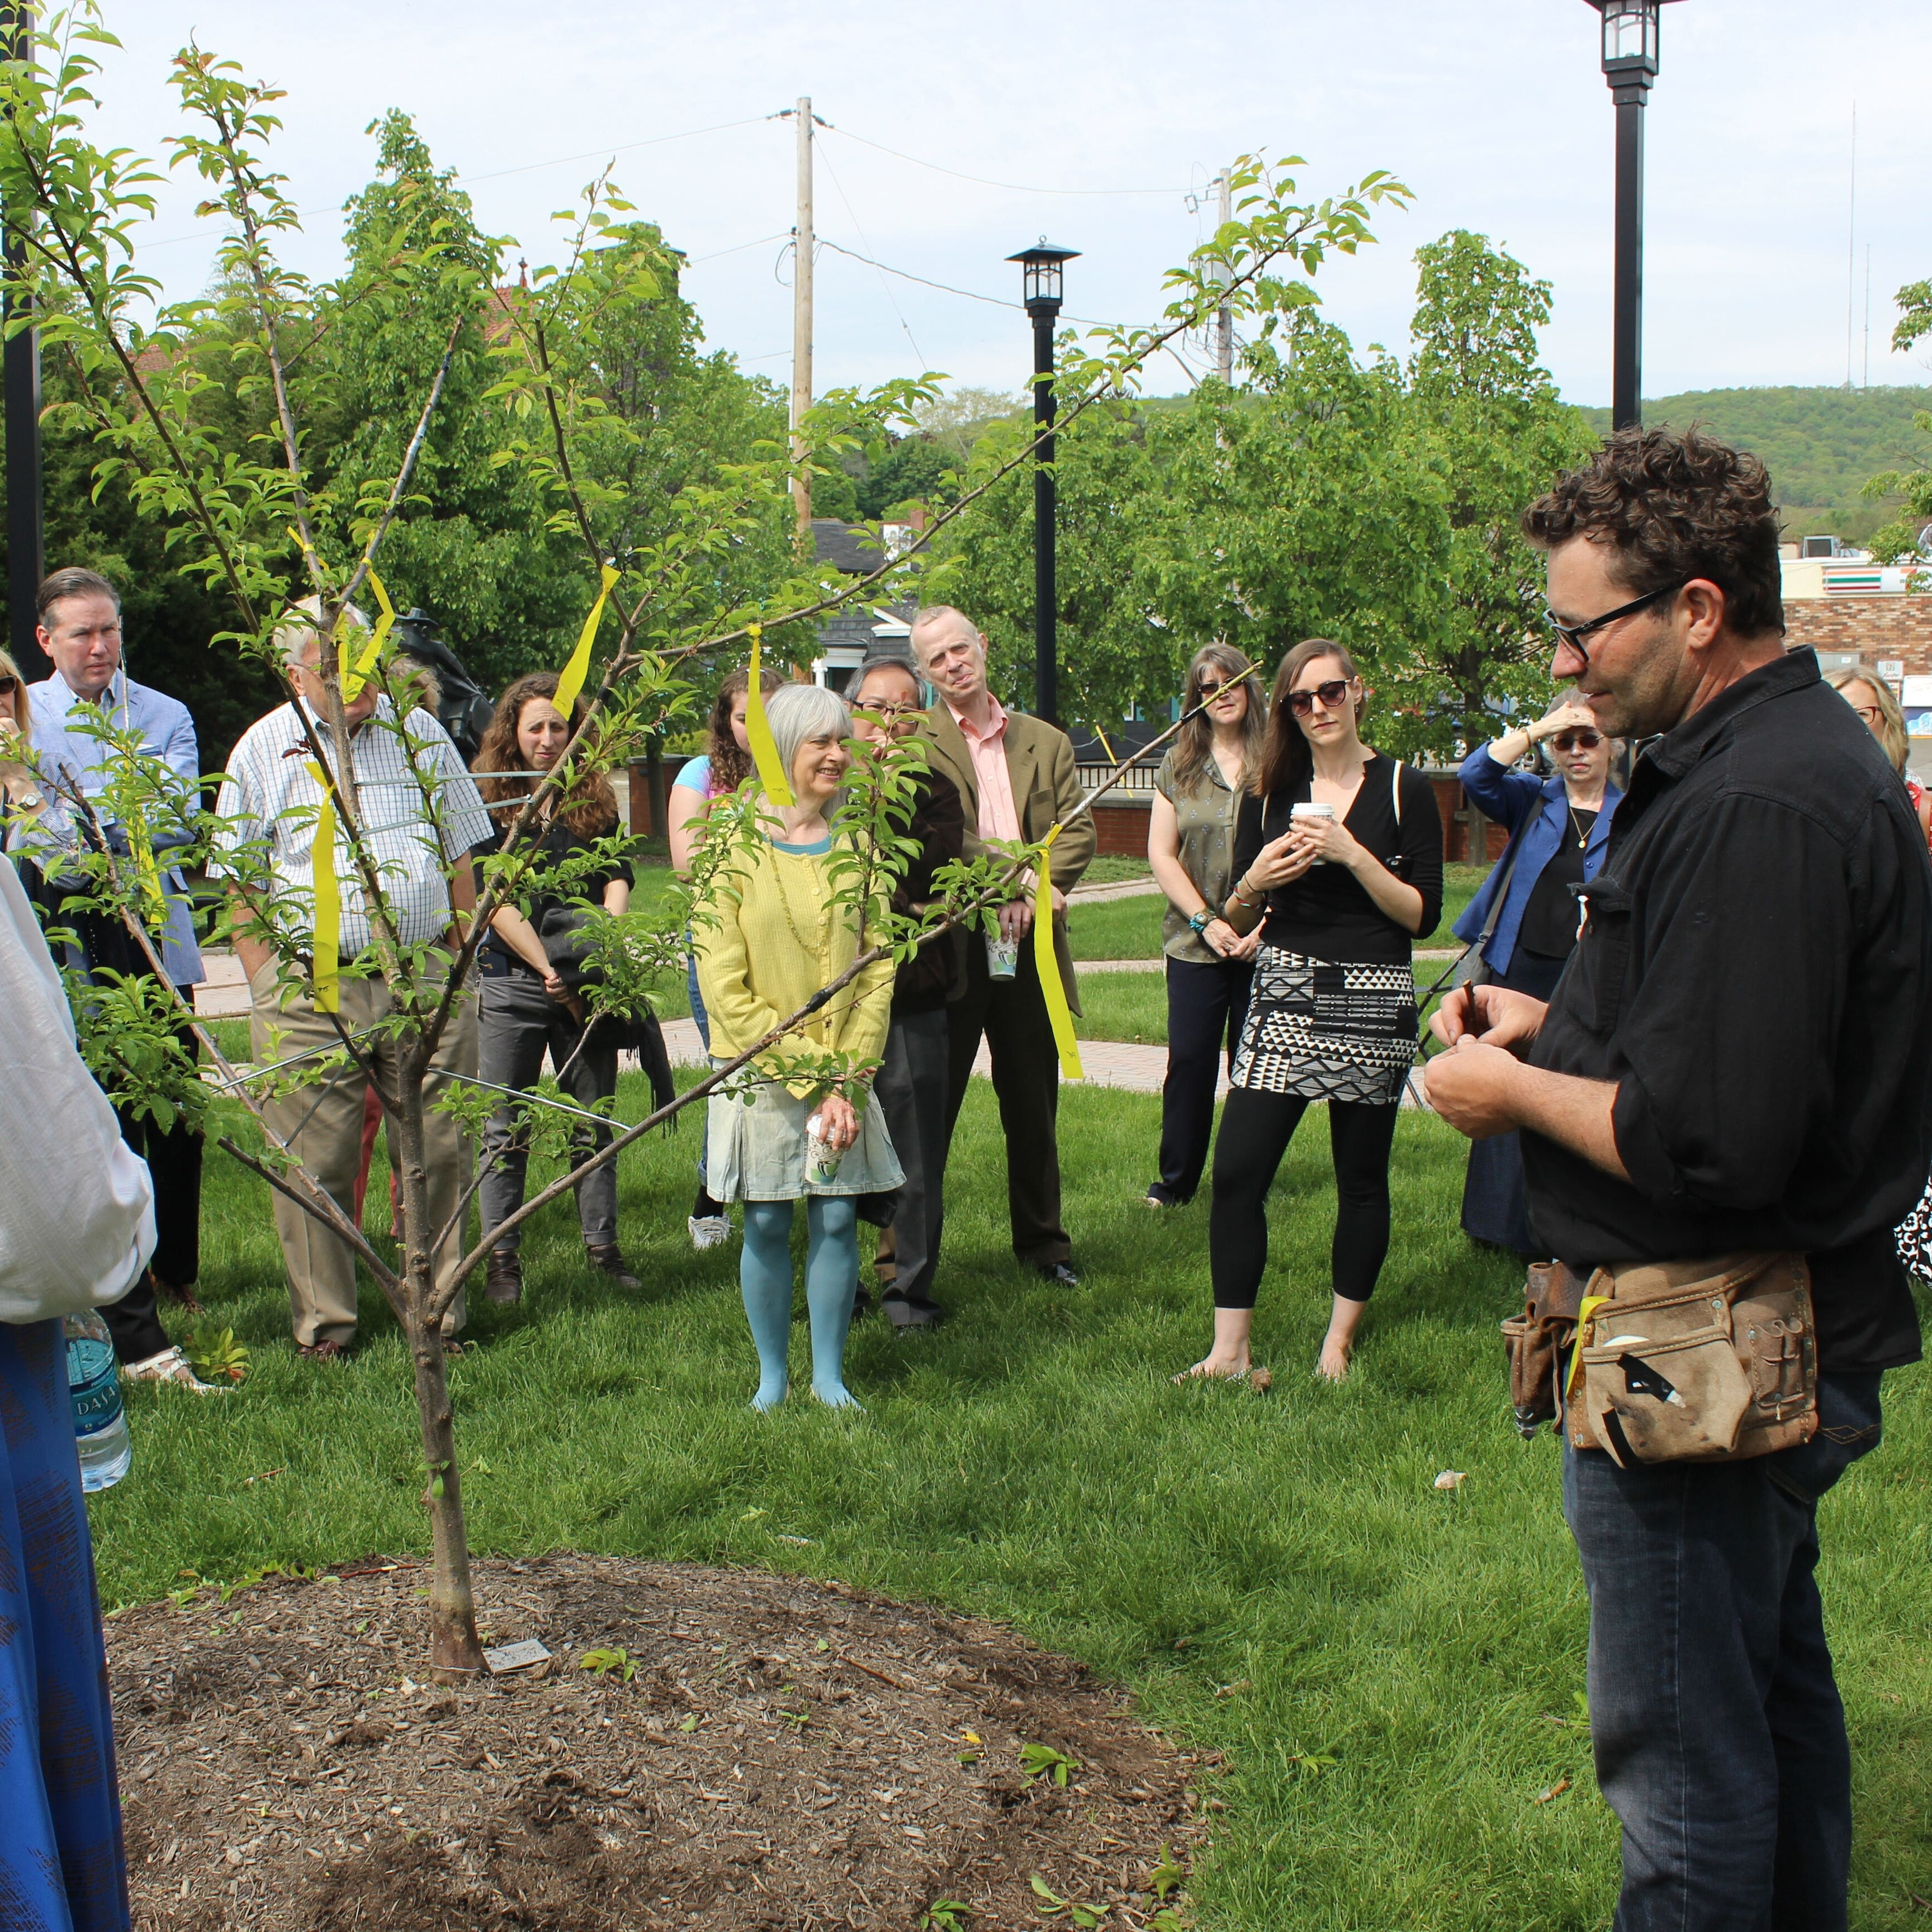 Artist Sam Van Aken, right, unveils his Tree of 40 Fruit No. 87, which is growing in a park across from the Rockwell Museum in Corning.